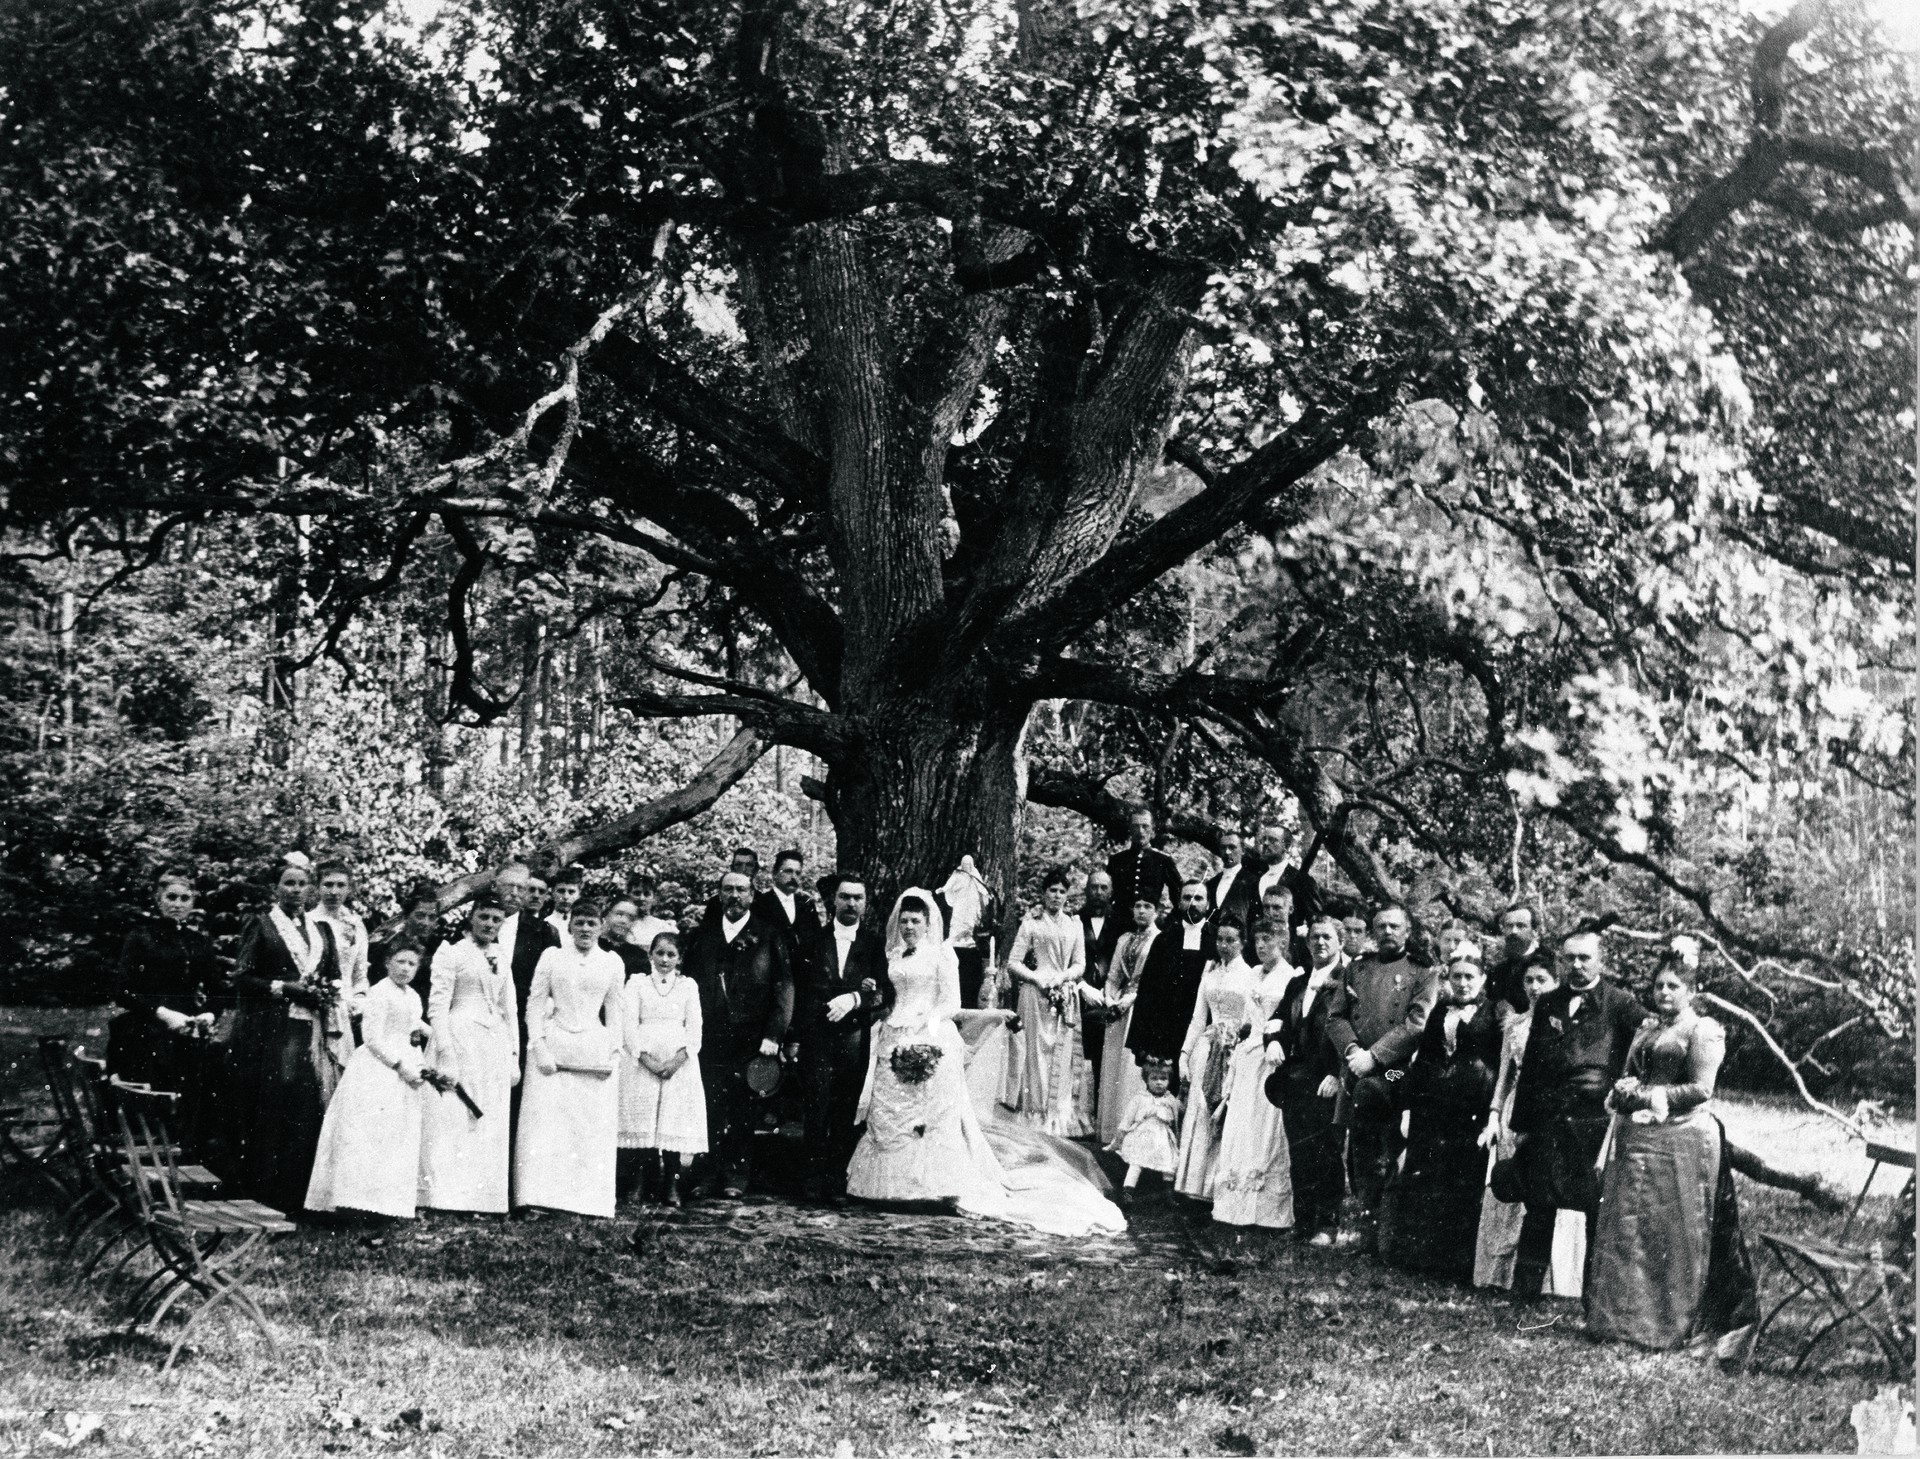 A wedding at the Bridegroom's Oak, 1927